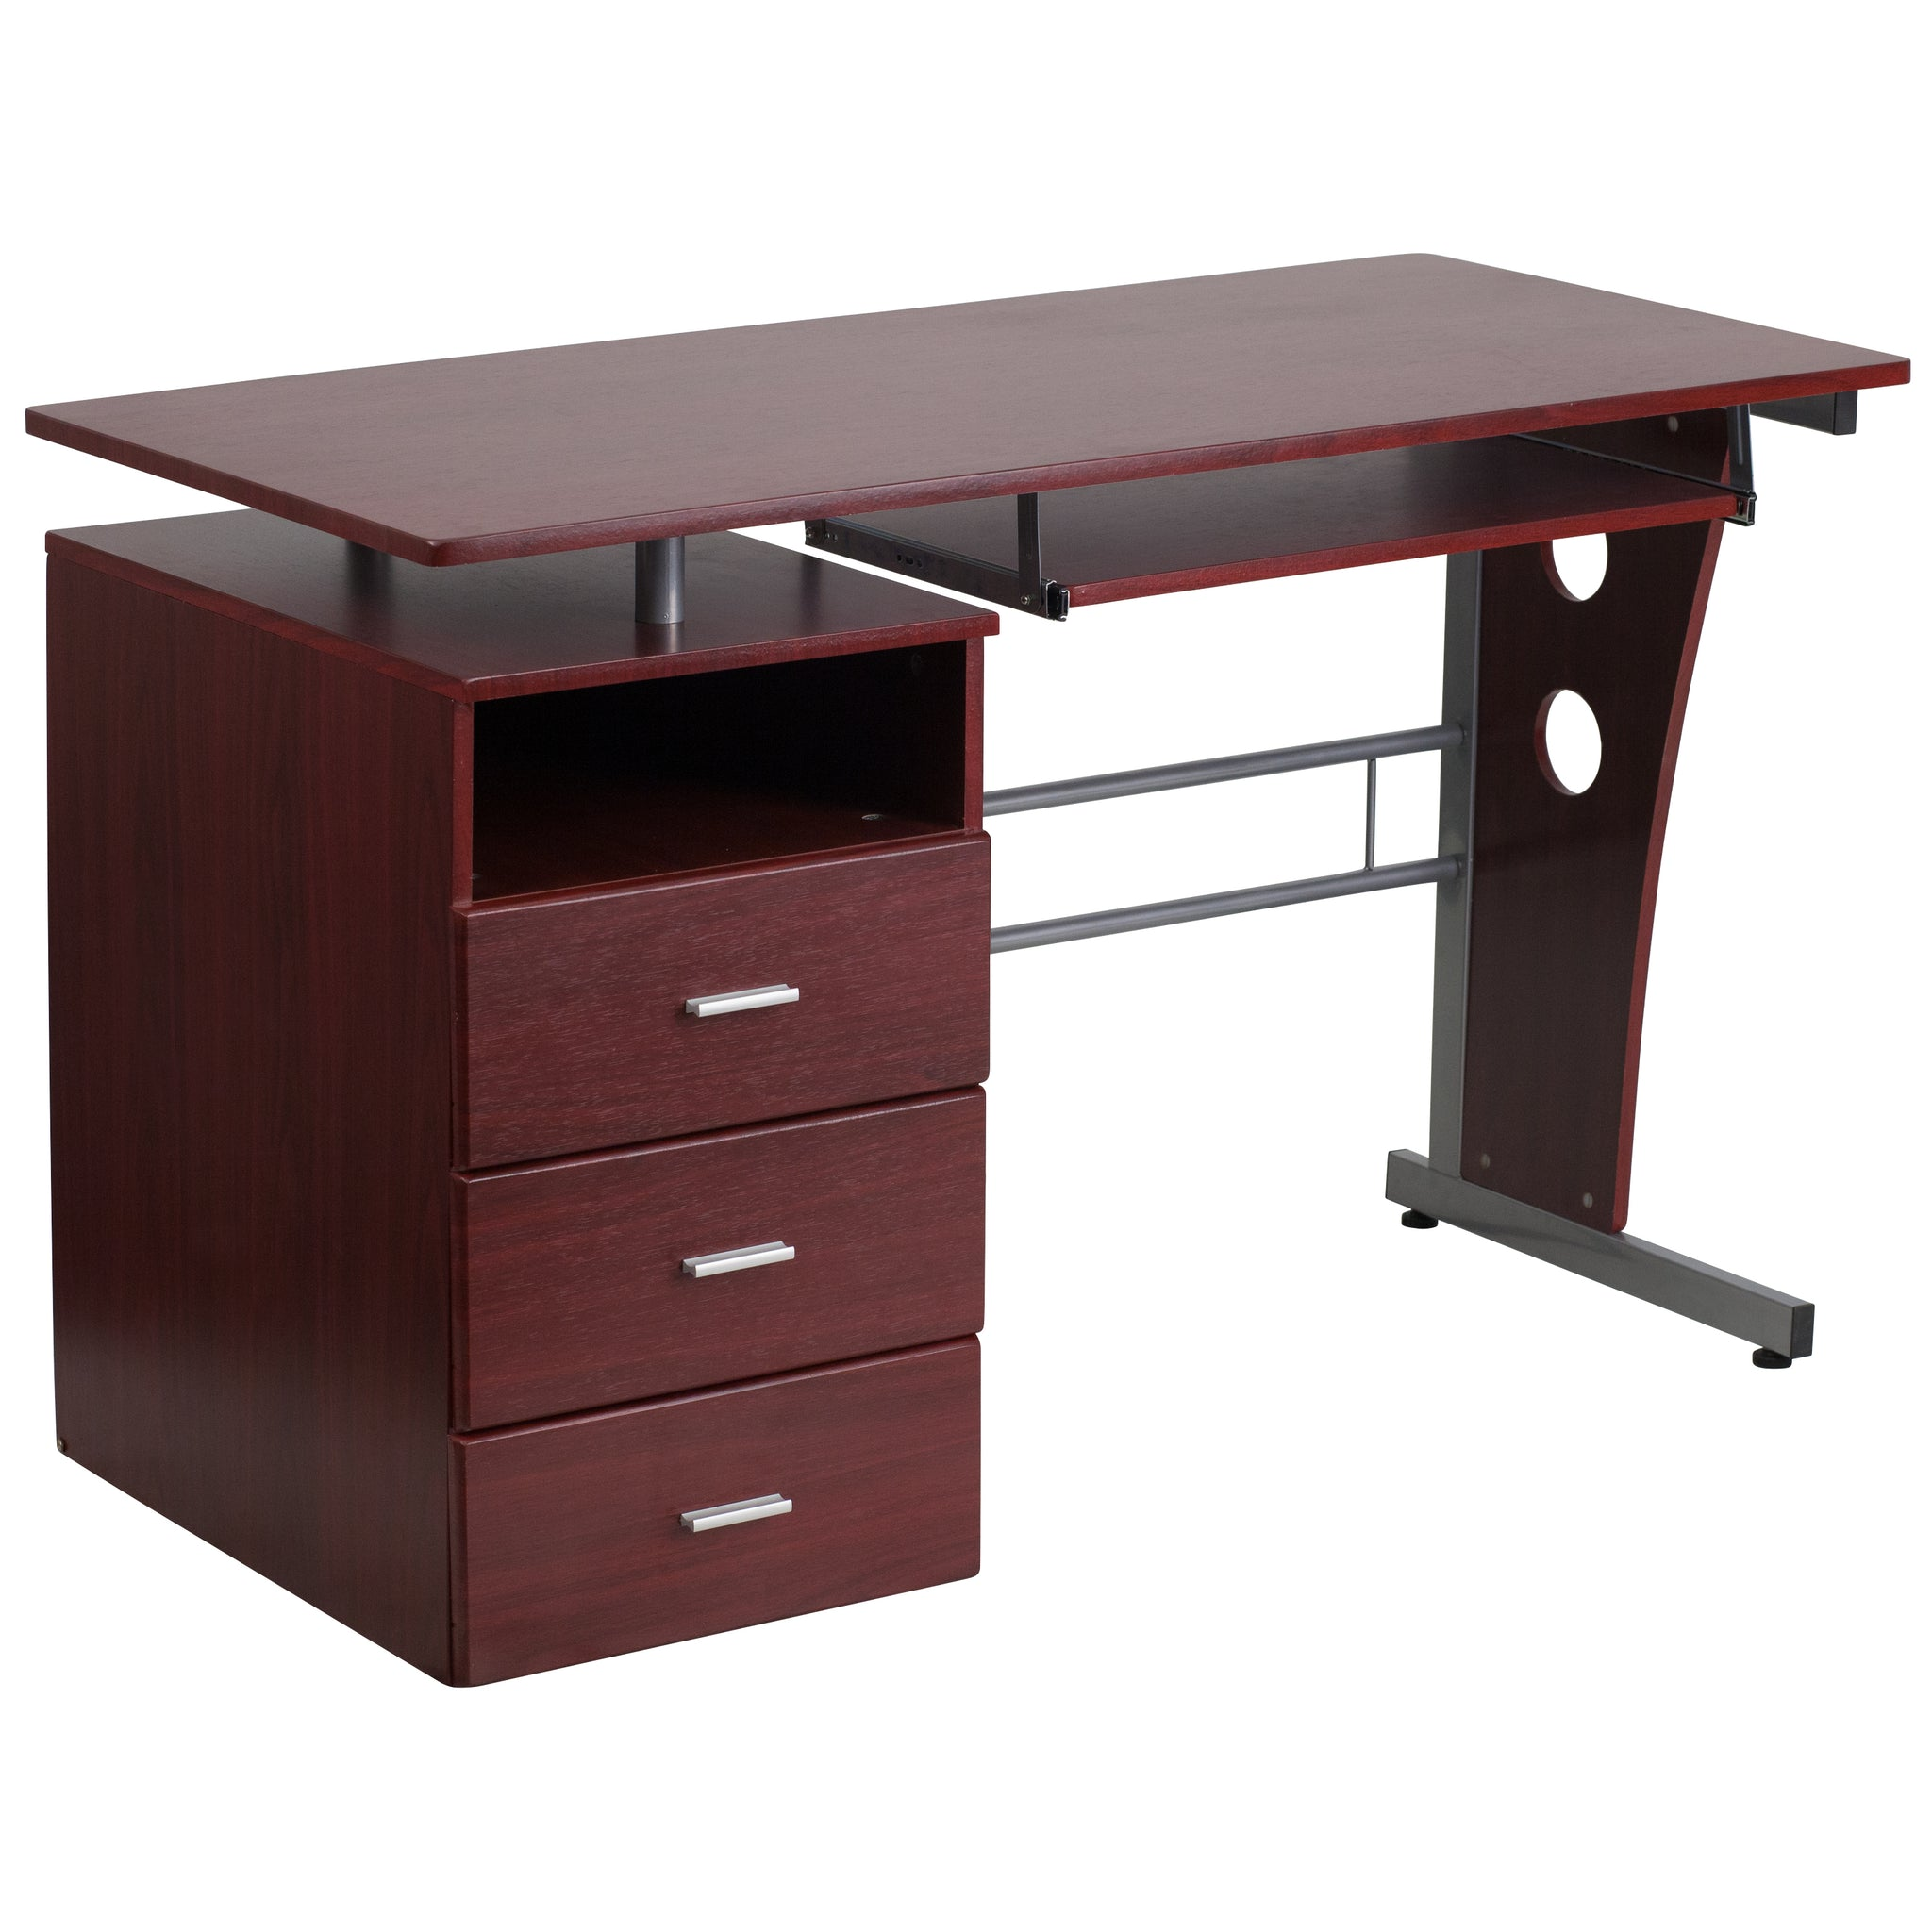 Desk with Three Drawer Pedestal and Pull-Out Keyboard Tray: Mahogany Laminate Top/Silver Frame